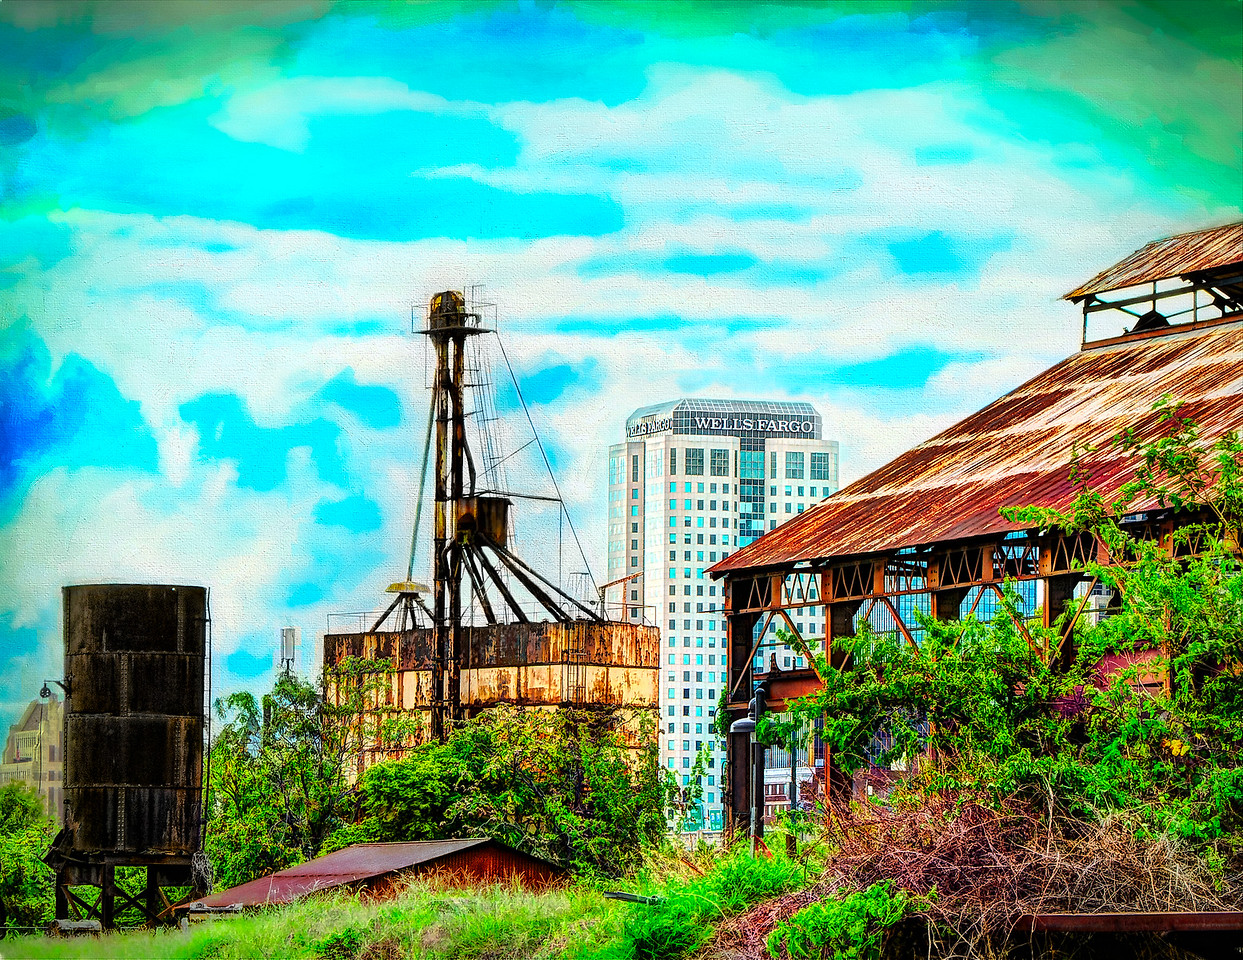 Mar --The theme is CityScapes. This is the Digital<br /> Sloss Furnaces, Birmingham